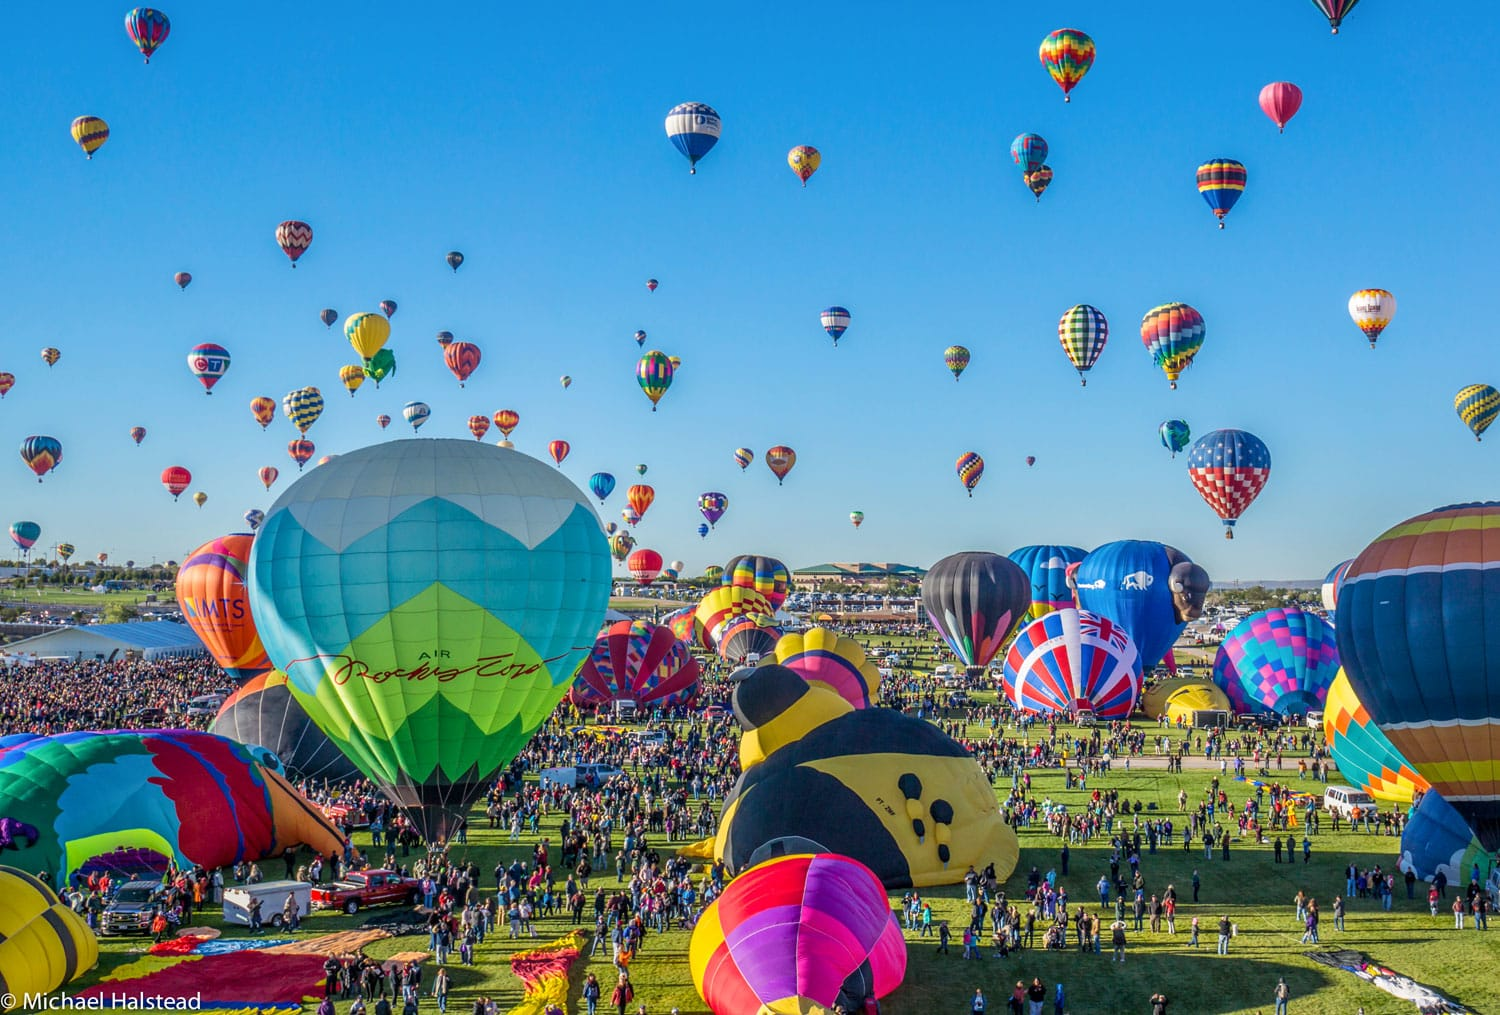 Mass ascension begins at the annual Albuquerque Balloon Festival.